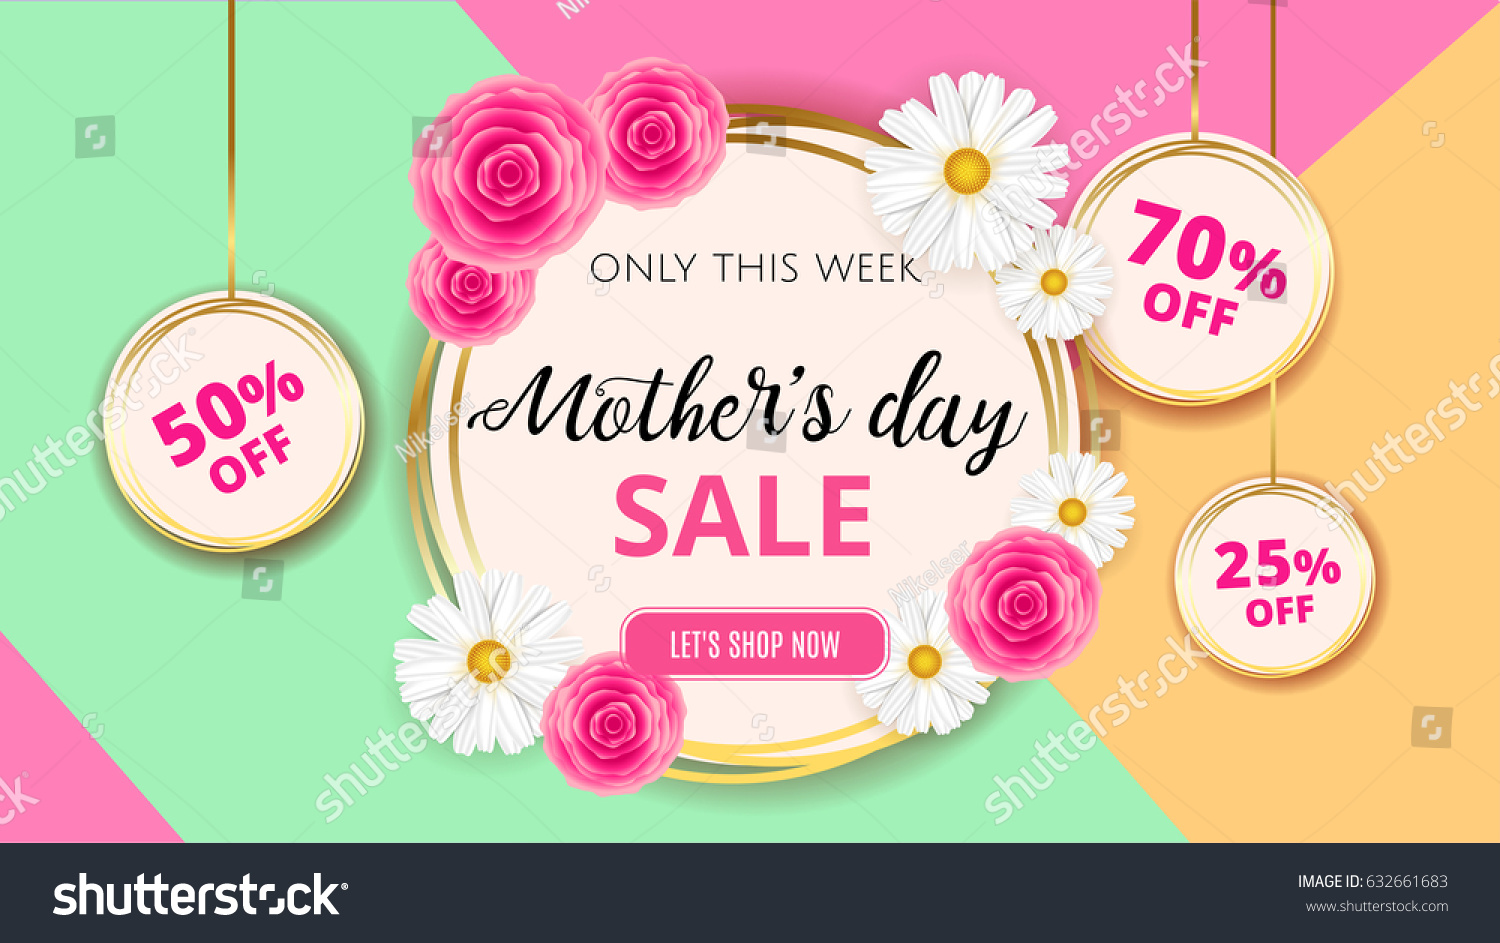 mothers day sale background template flowers のベクター画像素材